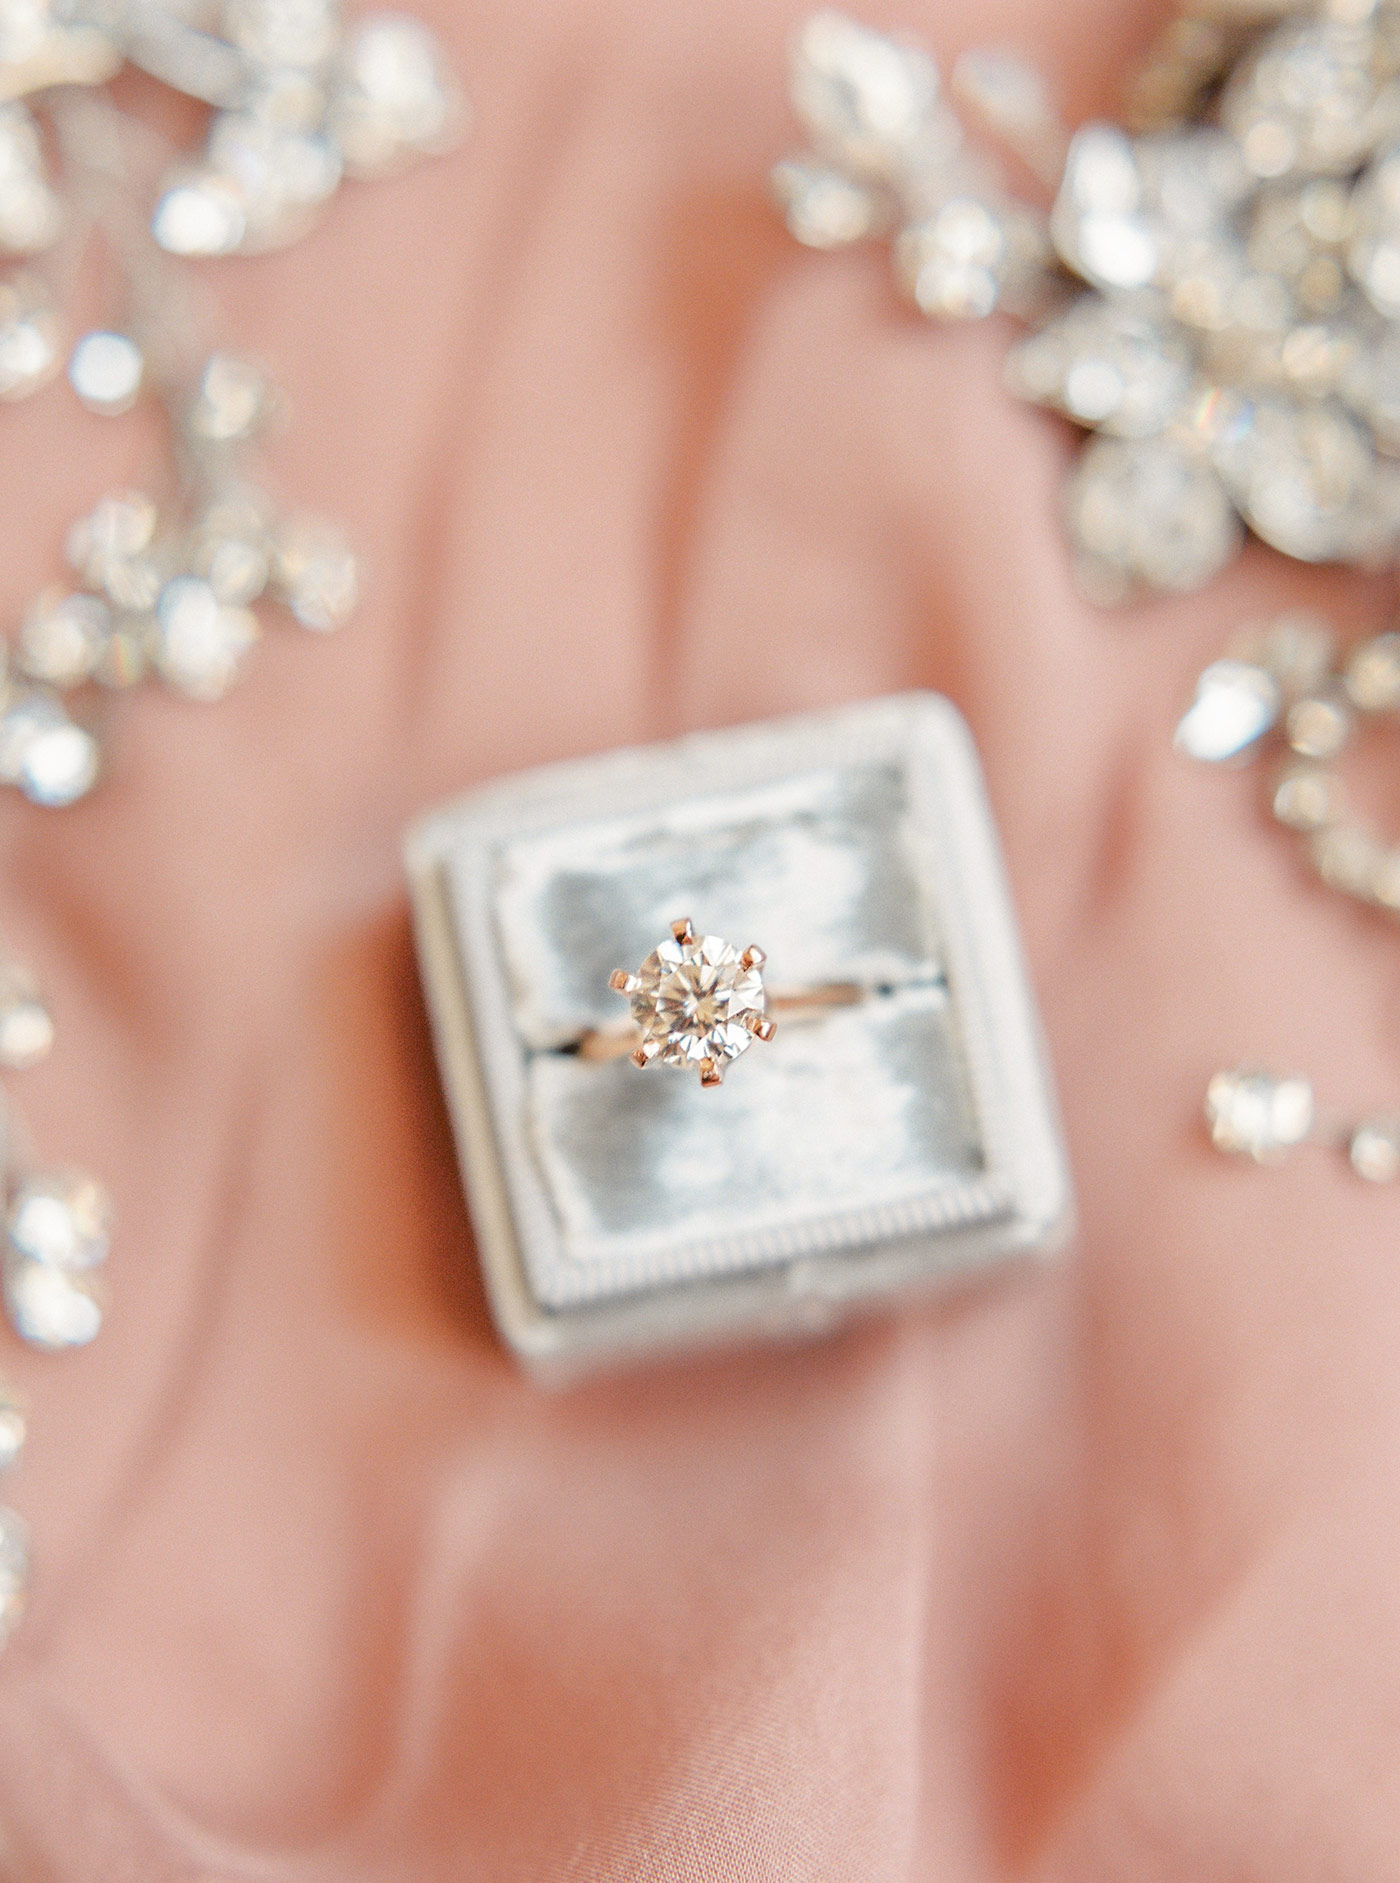 Bride's Engagement Ring and Accessories for her Wedding